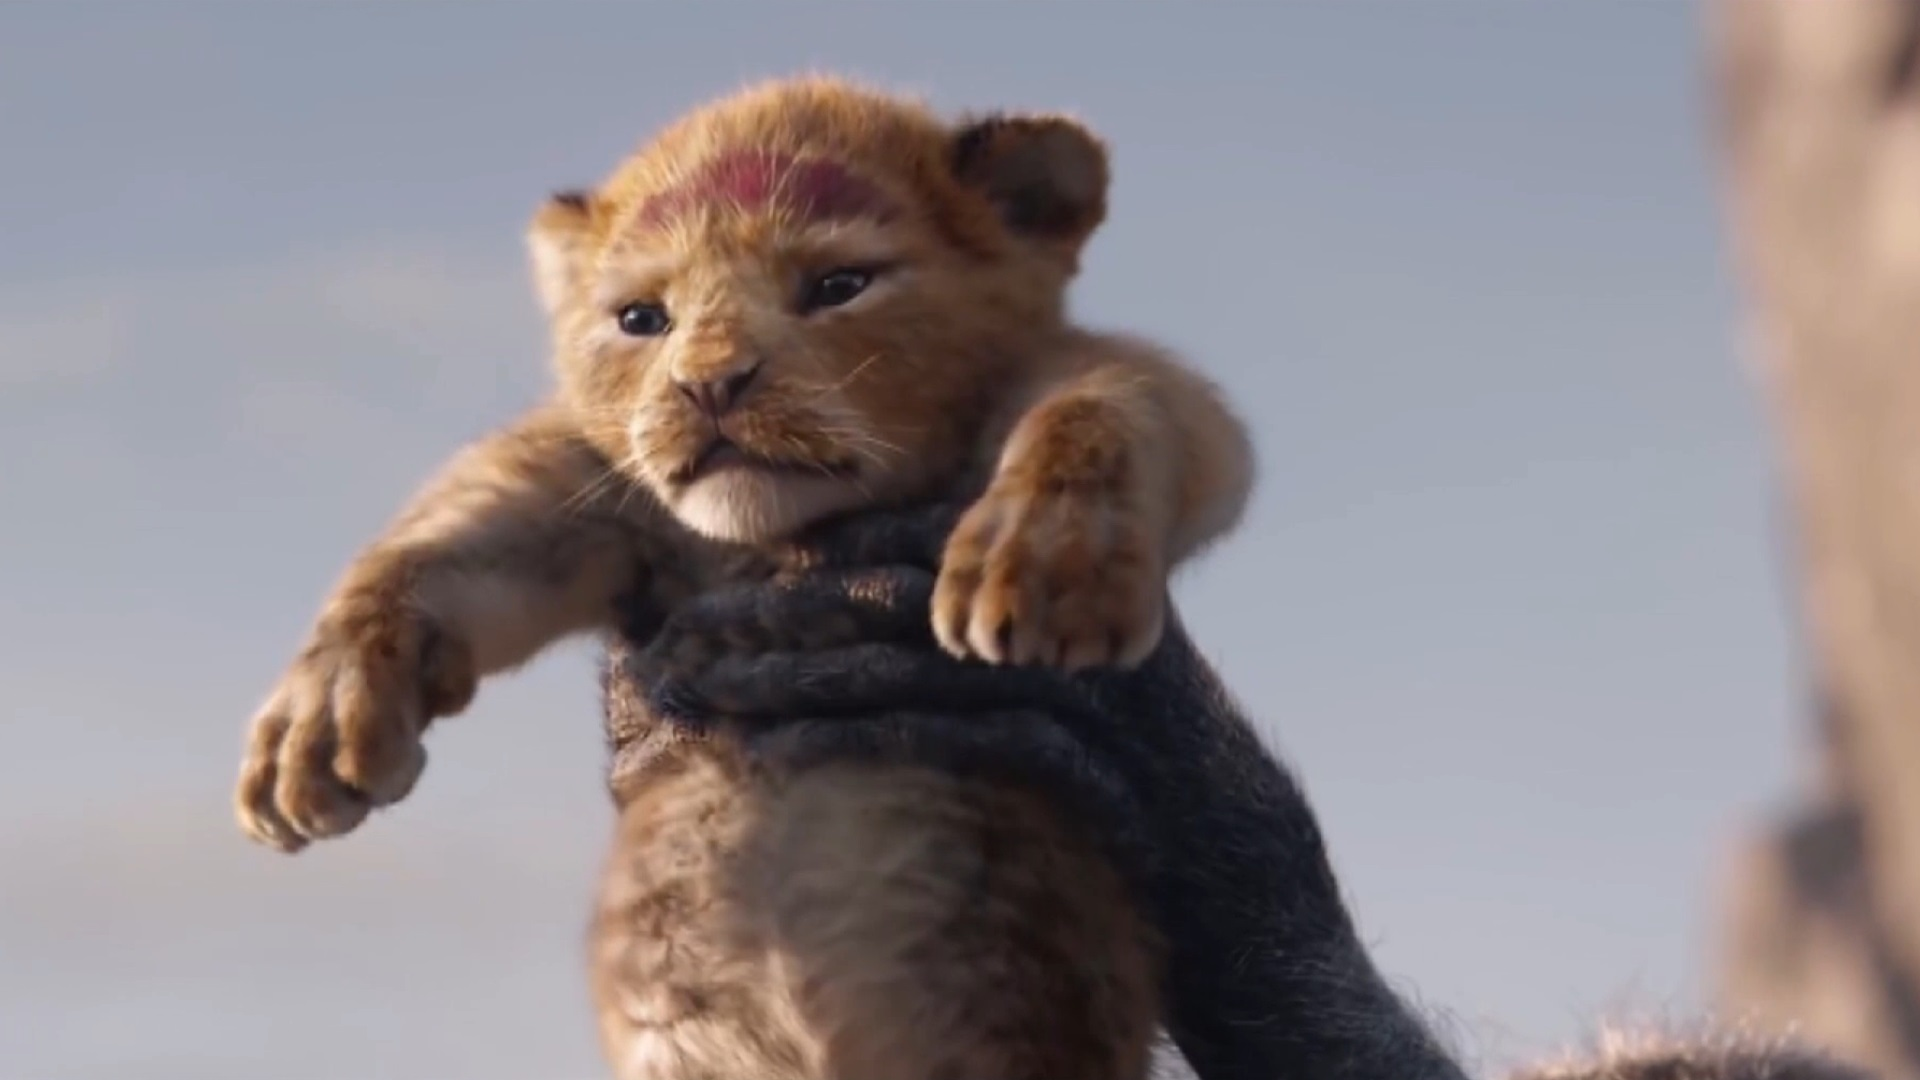 The Lion King 2019   The Lion King 2019 Wallpaper 42723127 1920x1080